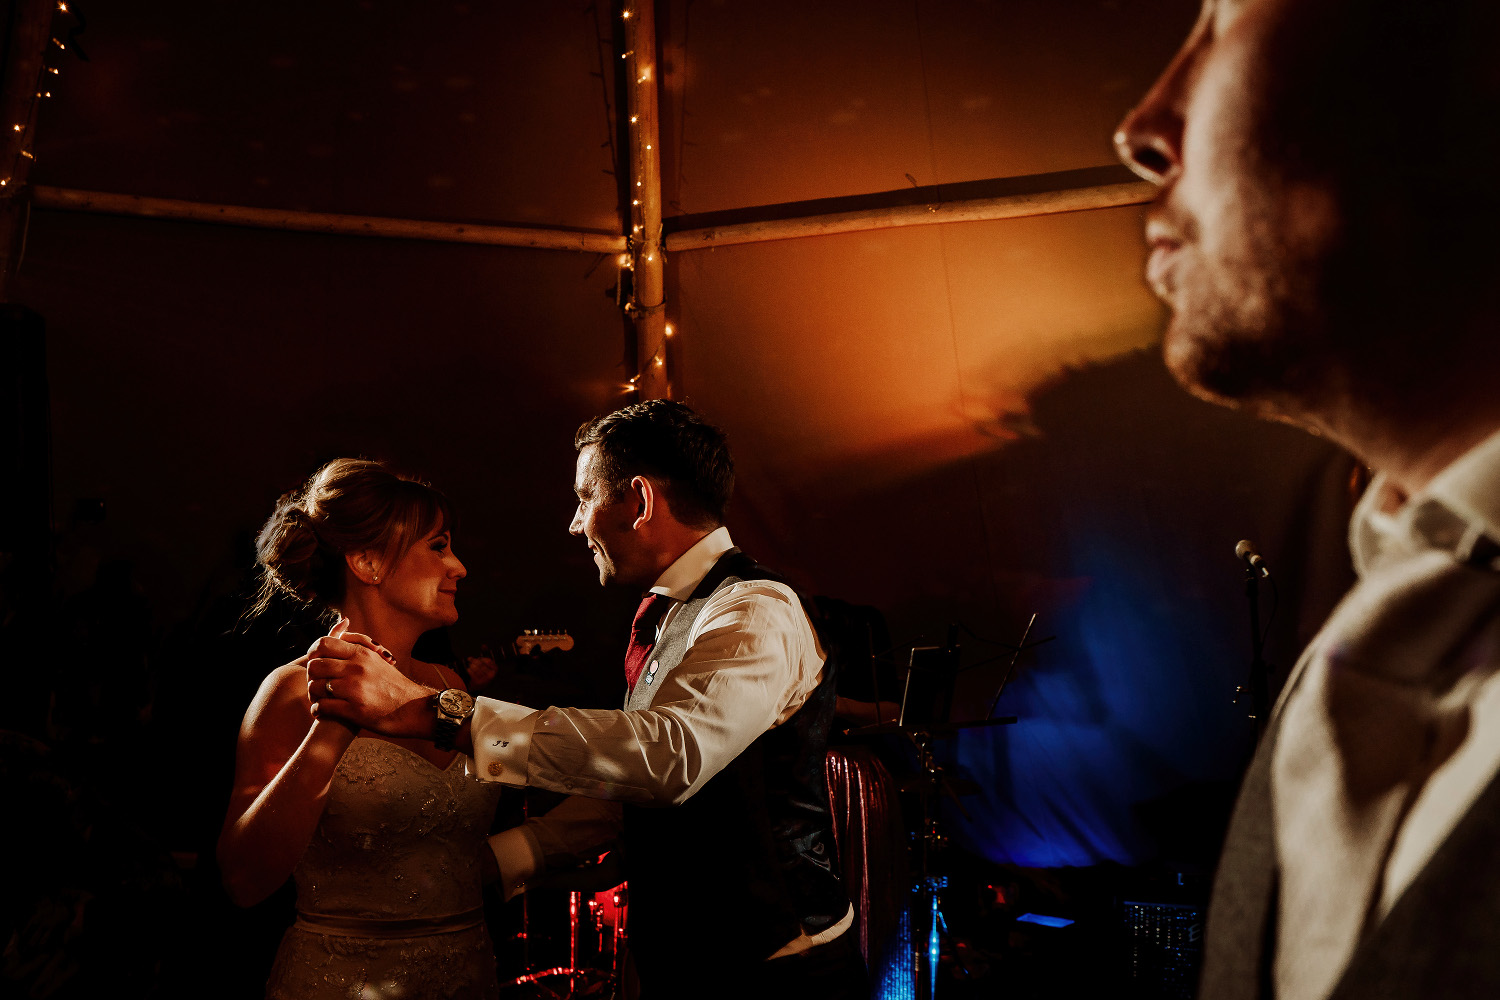 bride and groom dancing as best man watches